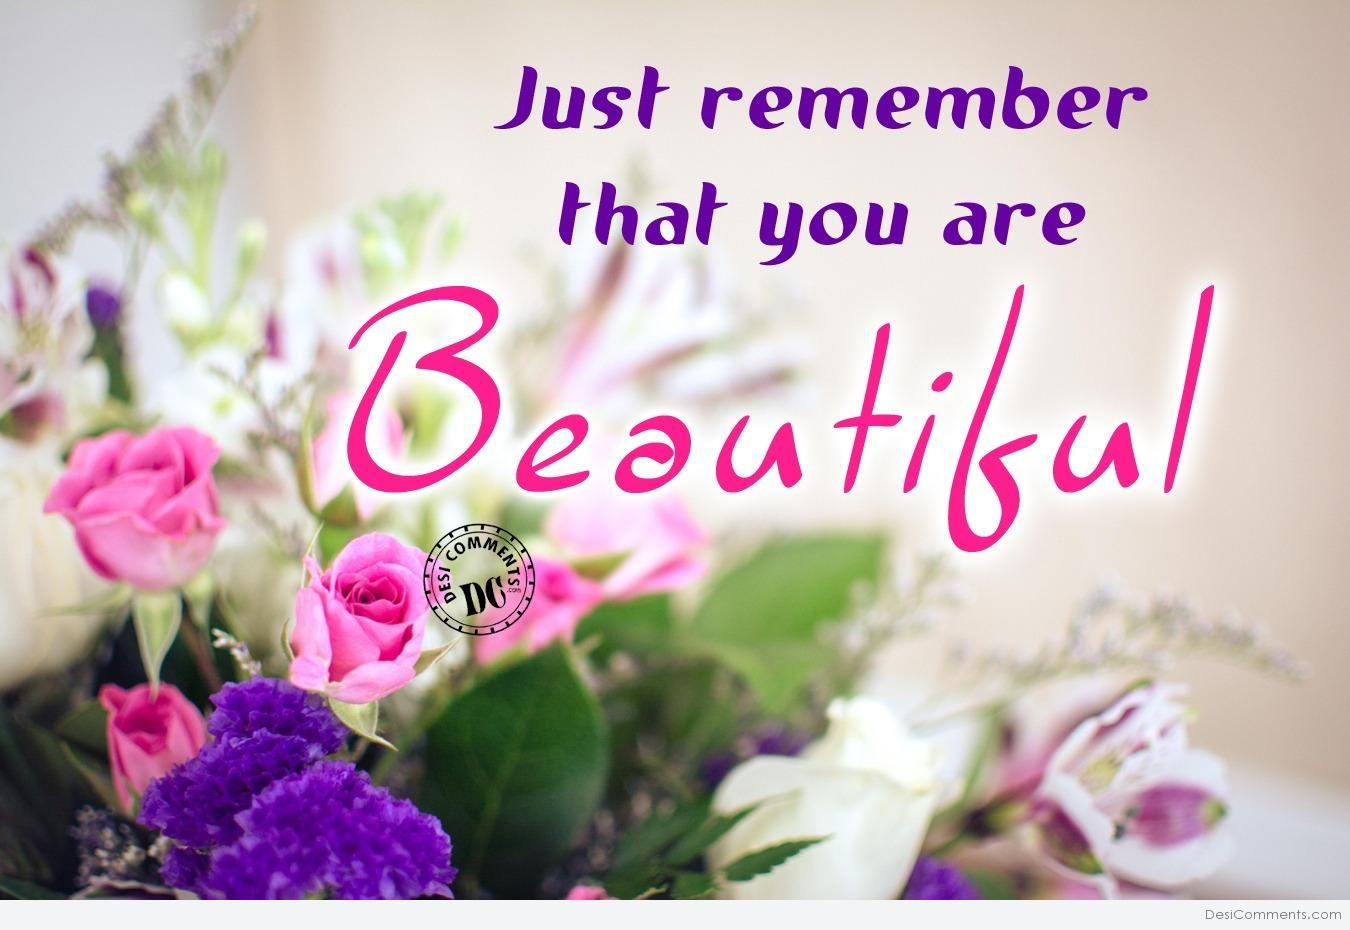 Love Sad Quotes Wallpapers Just Remember That You Are Beautiful Desicomments Com